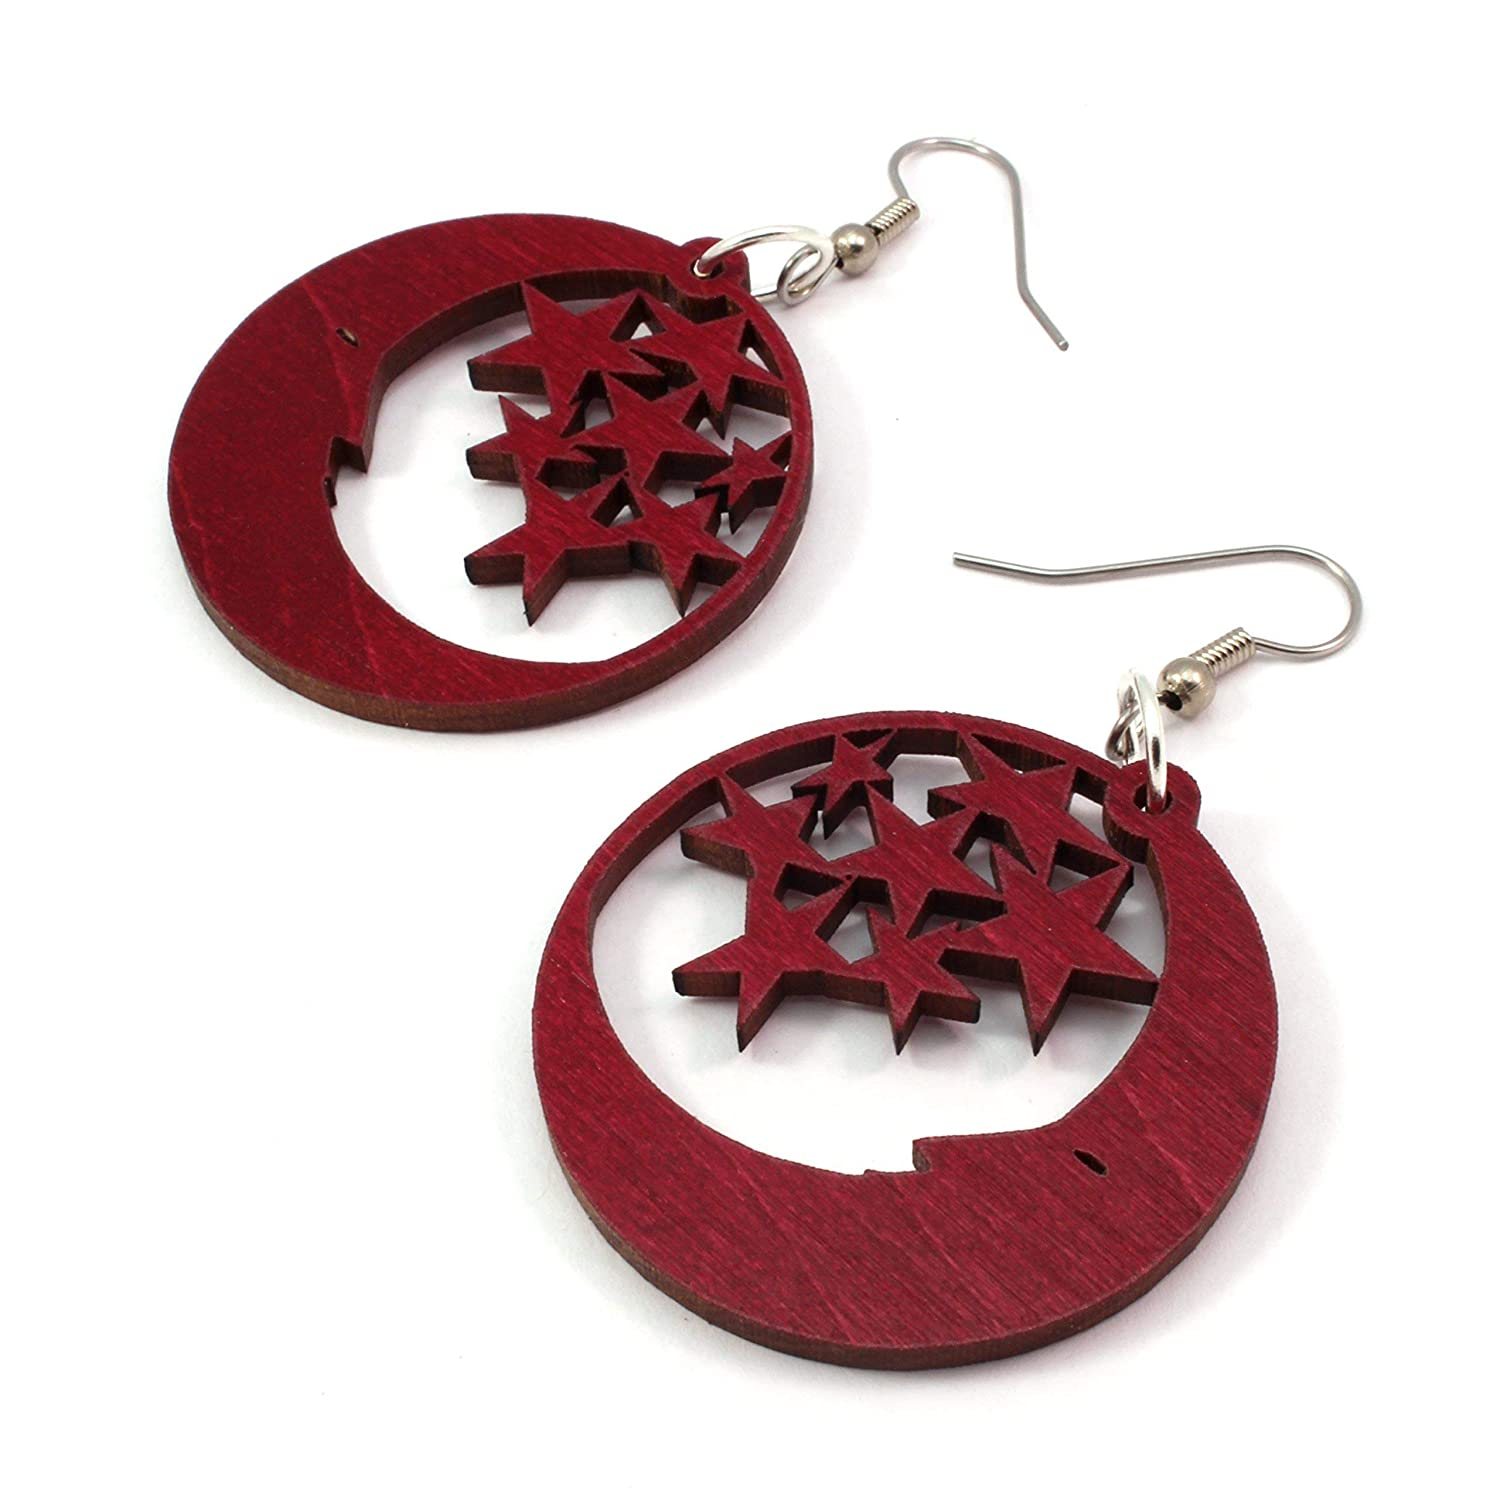 - Hook Dangle Drop Earrings Moon and Stars Earrings made of Sustainable Red-Stained Maple Wood Small 1.5